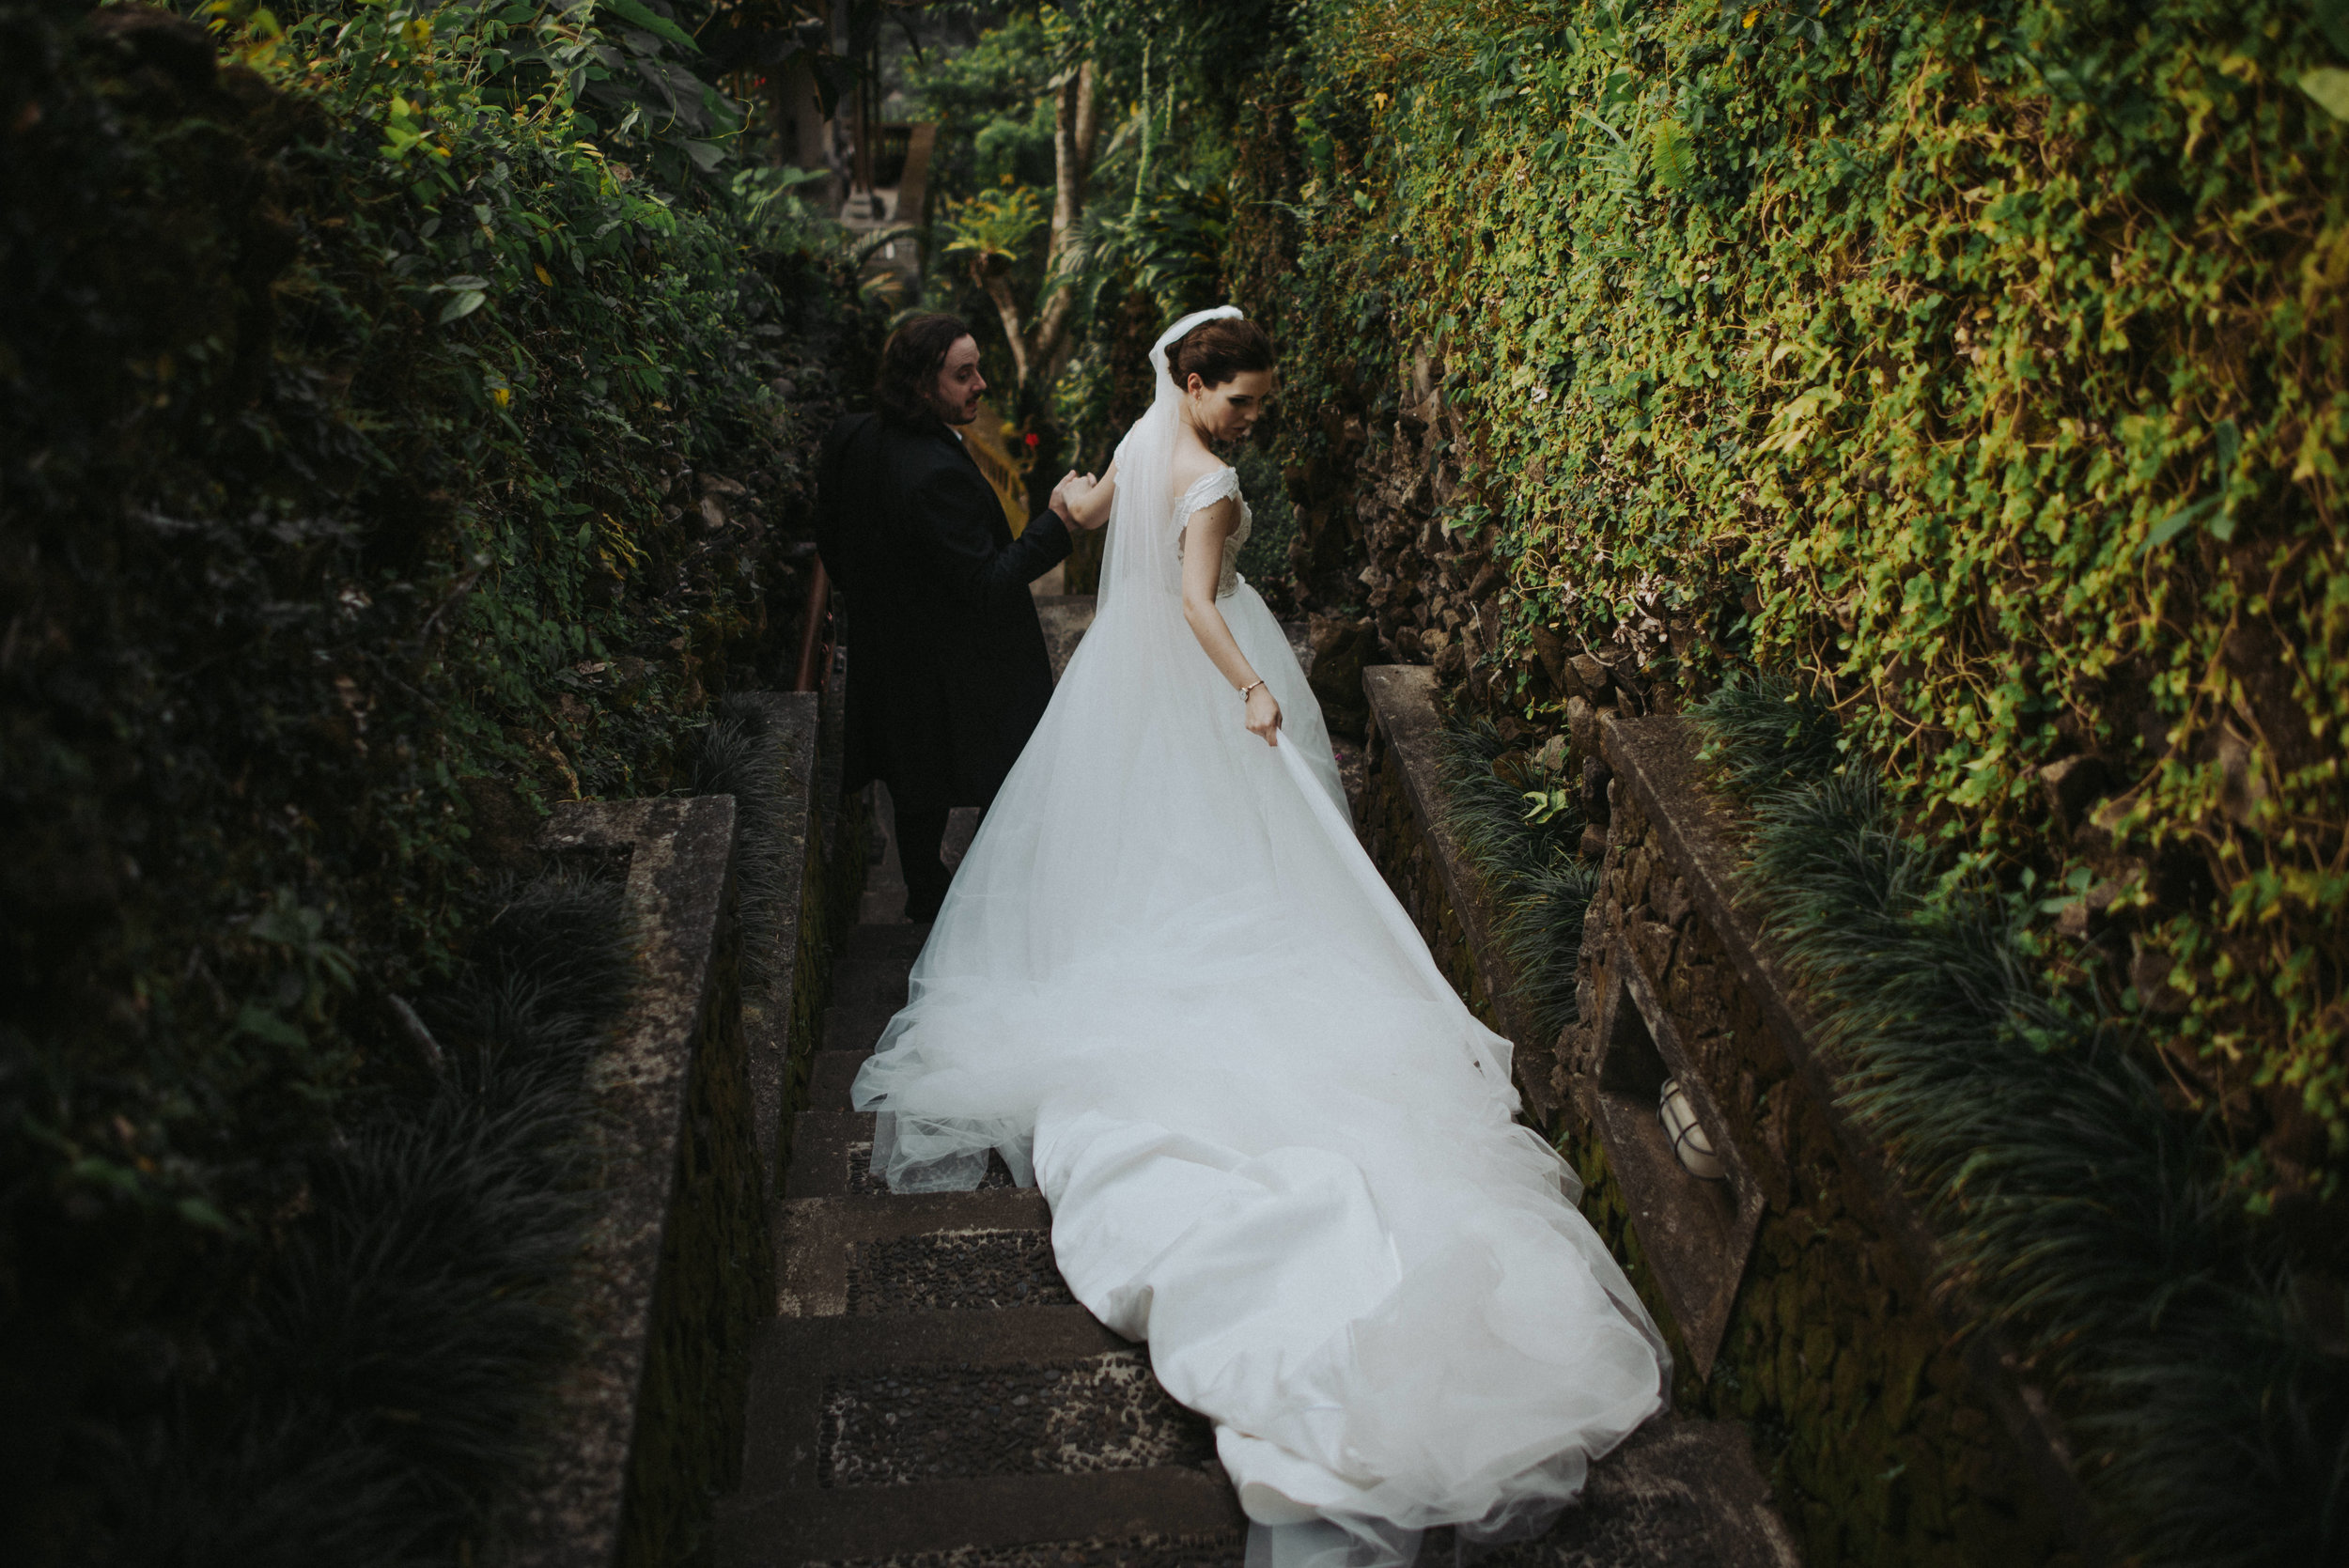 $1,500 off your wedding photography - Capture all your precious memories and save thousands of $ with this limited time special offer!